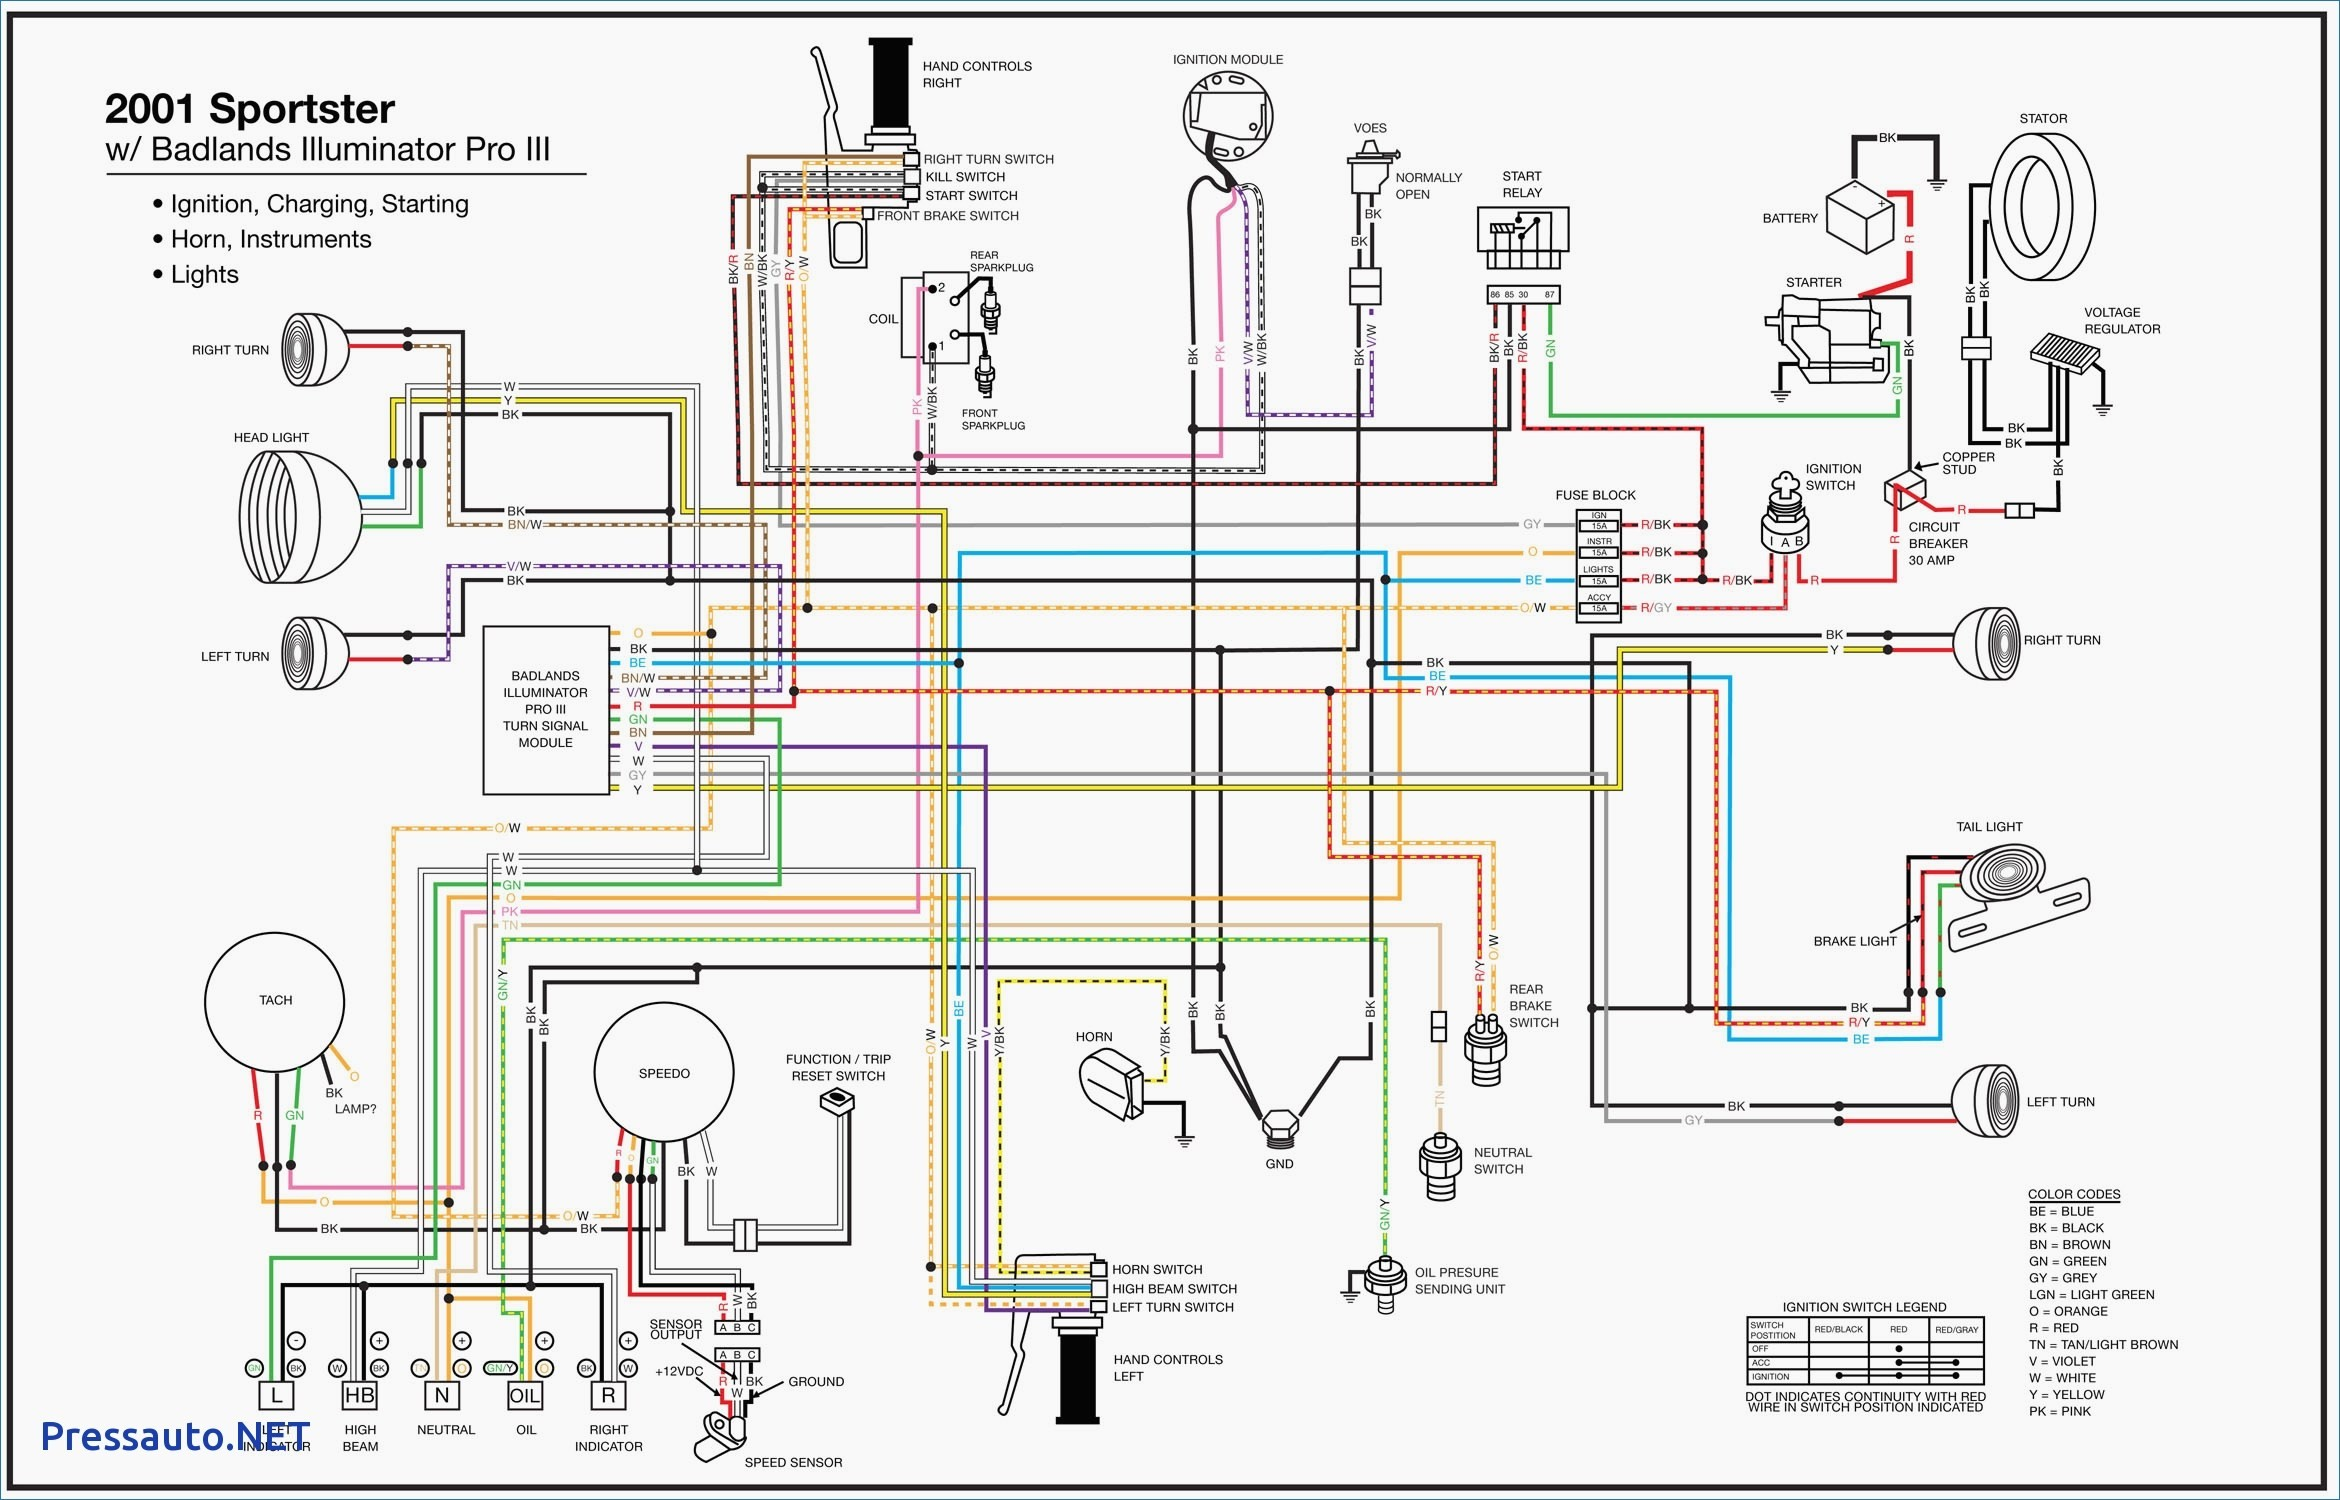 1986 Wire Digram ford Ignition Module 1998 Bmw 528i Wiring Diagram Wiring Diagram Module B Of 1986 Wire Digram ford Ignition Module